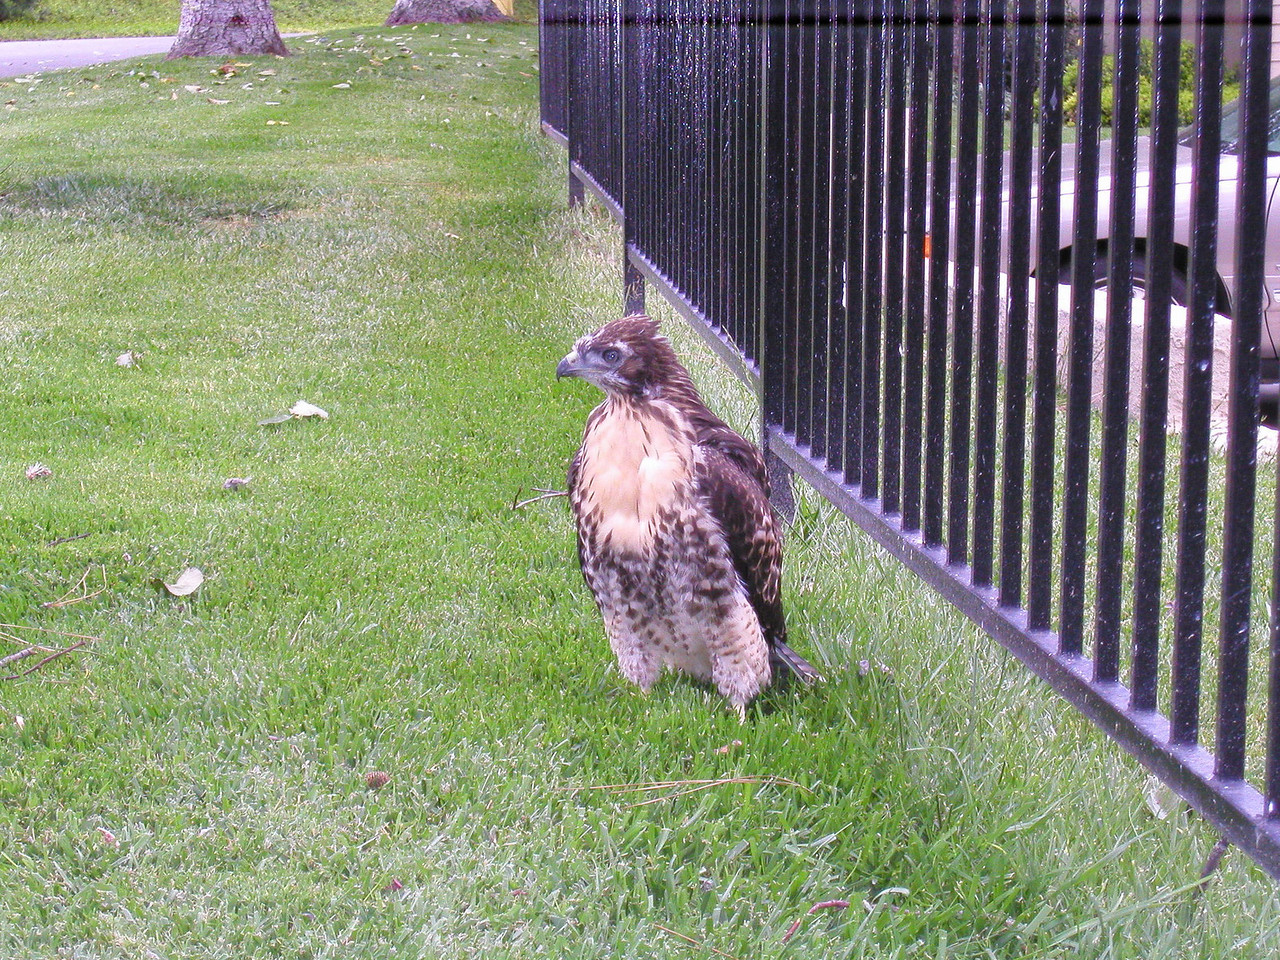 OLYMPUS DIGITAL CAMERA, May 14, 2003: adolescent red-tailed hawk tried to fly but fell to ground.  It then flew up on the wrought-iron fence (next photo)